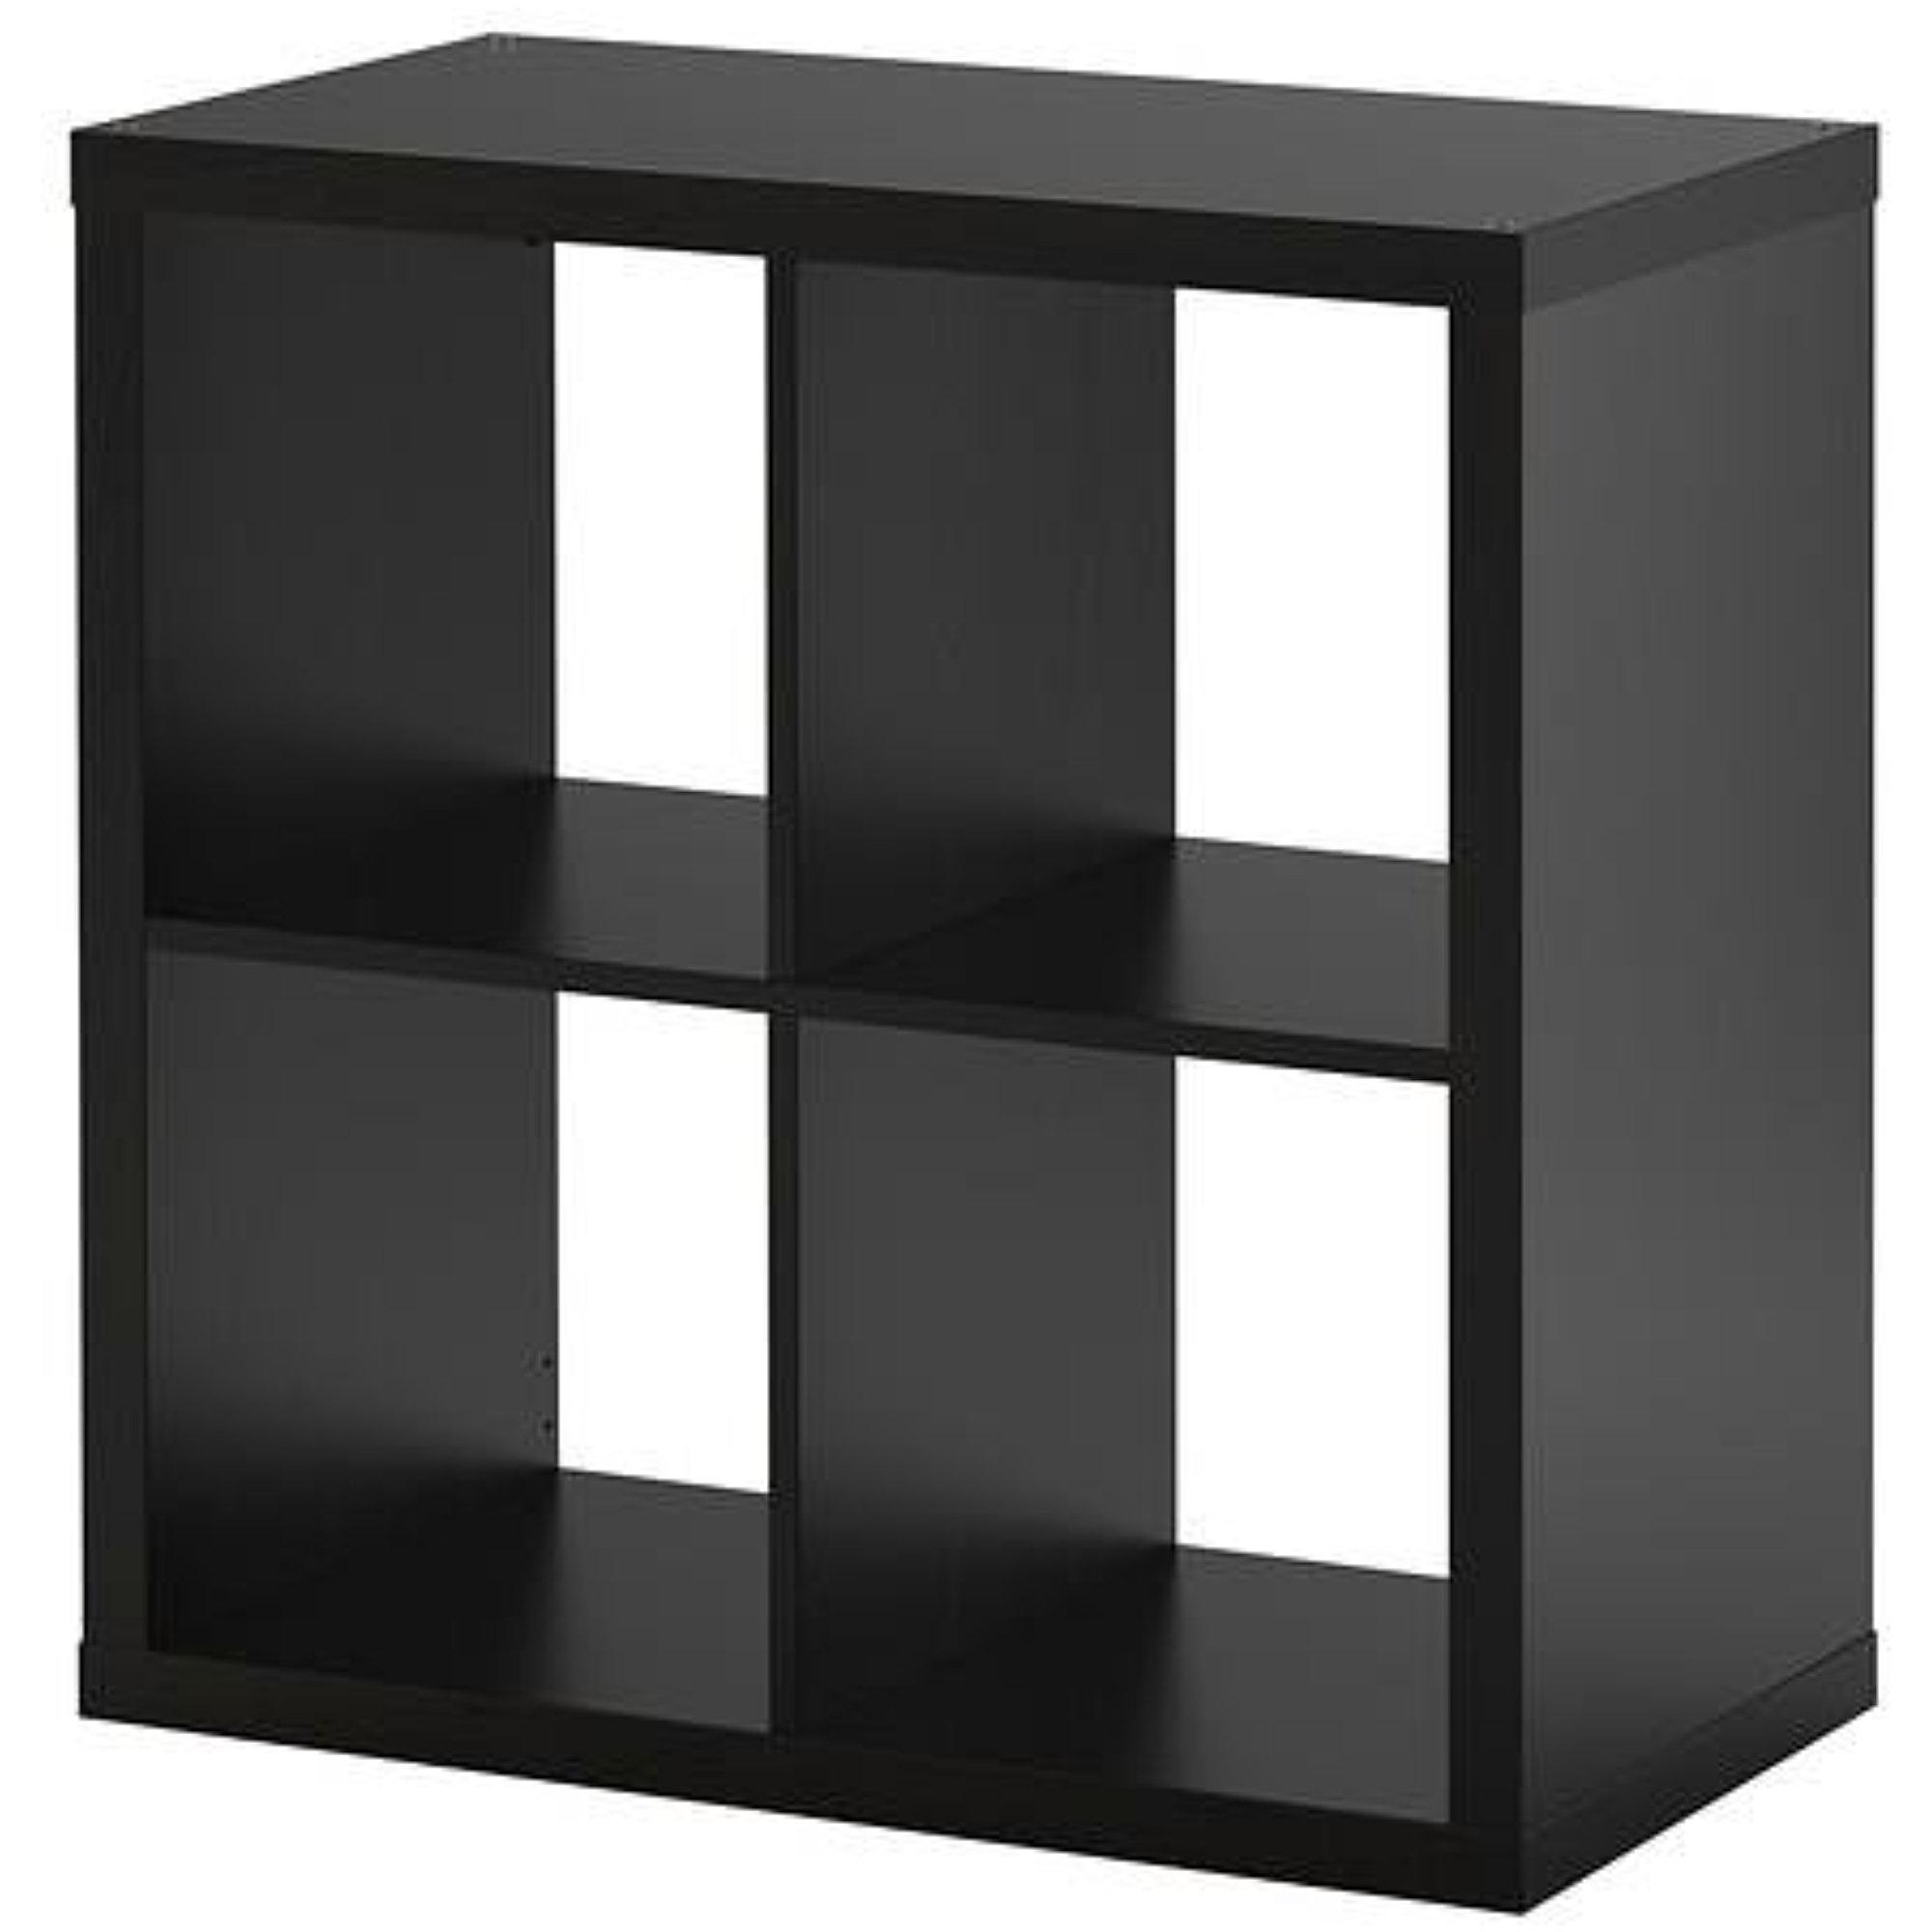 Ikea Kallax Ikea Kallax 4 Shelving Unit Black Brown 26210 231726 46